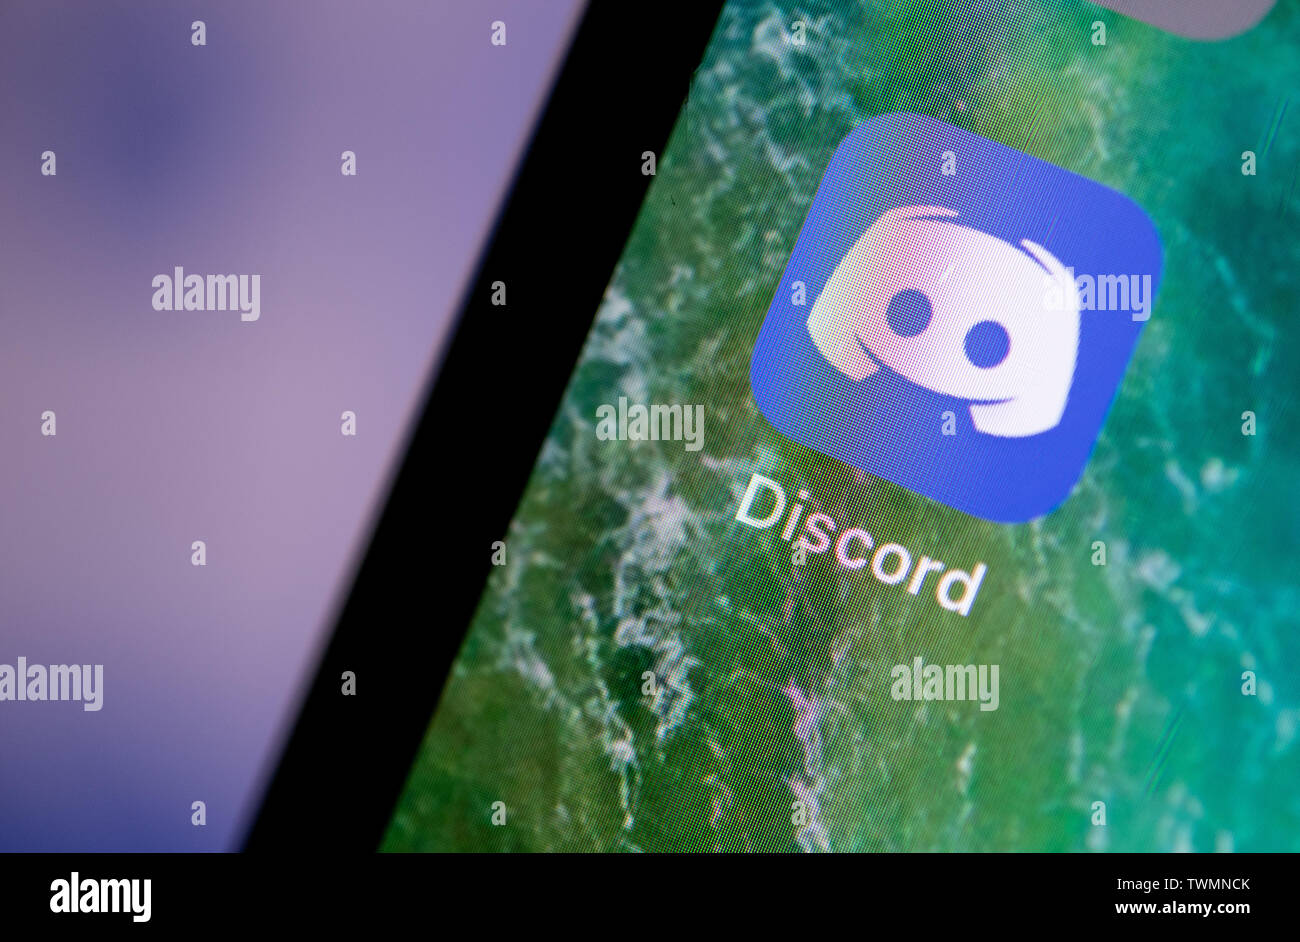 Stuttgart, Germany. 21st June, 2019. The Discord app is displayed on the screen of an iPhone. Credit: Fabian Sommer/dpa/Alamy Live News - Stock Image